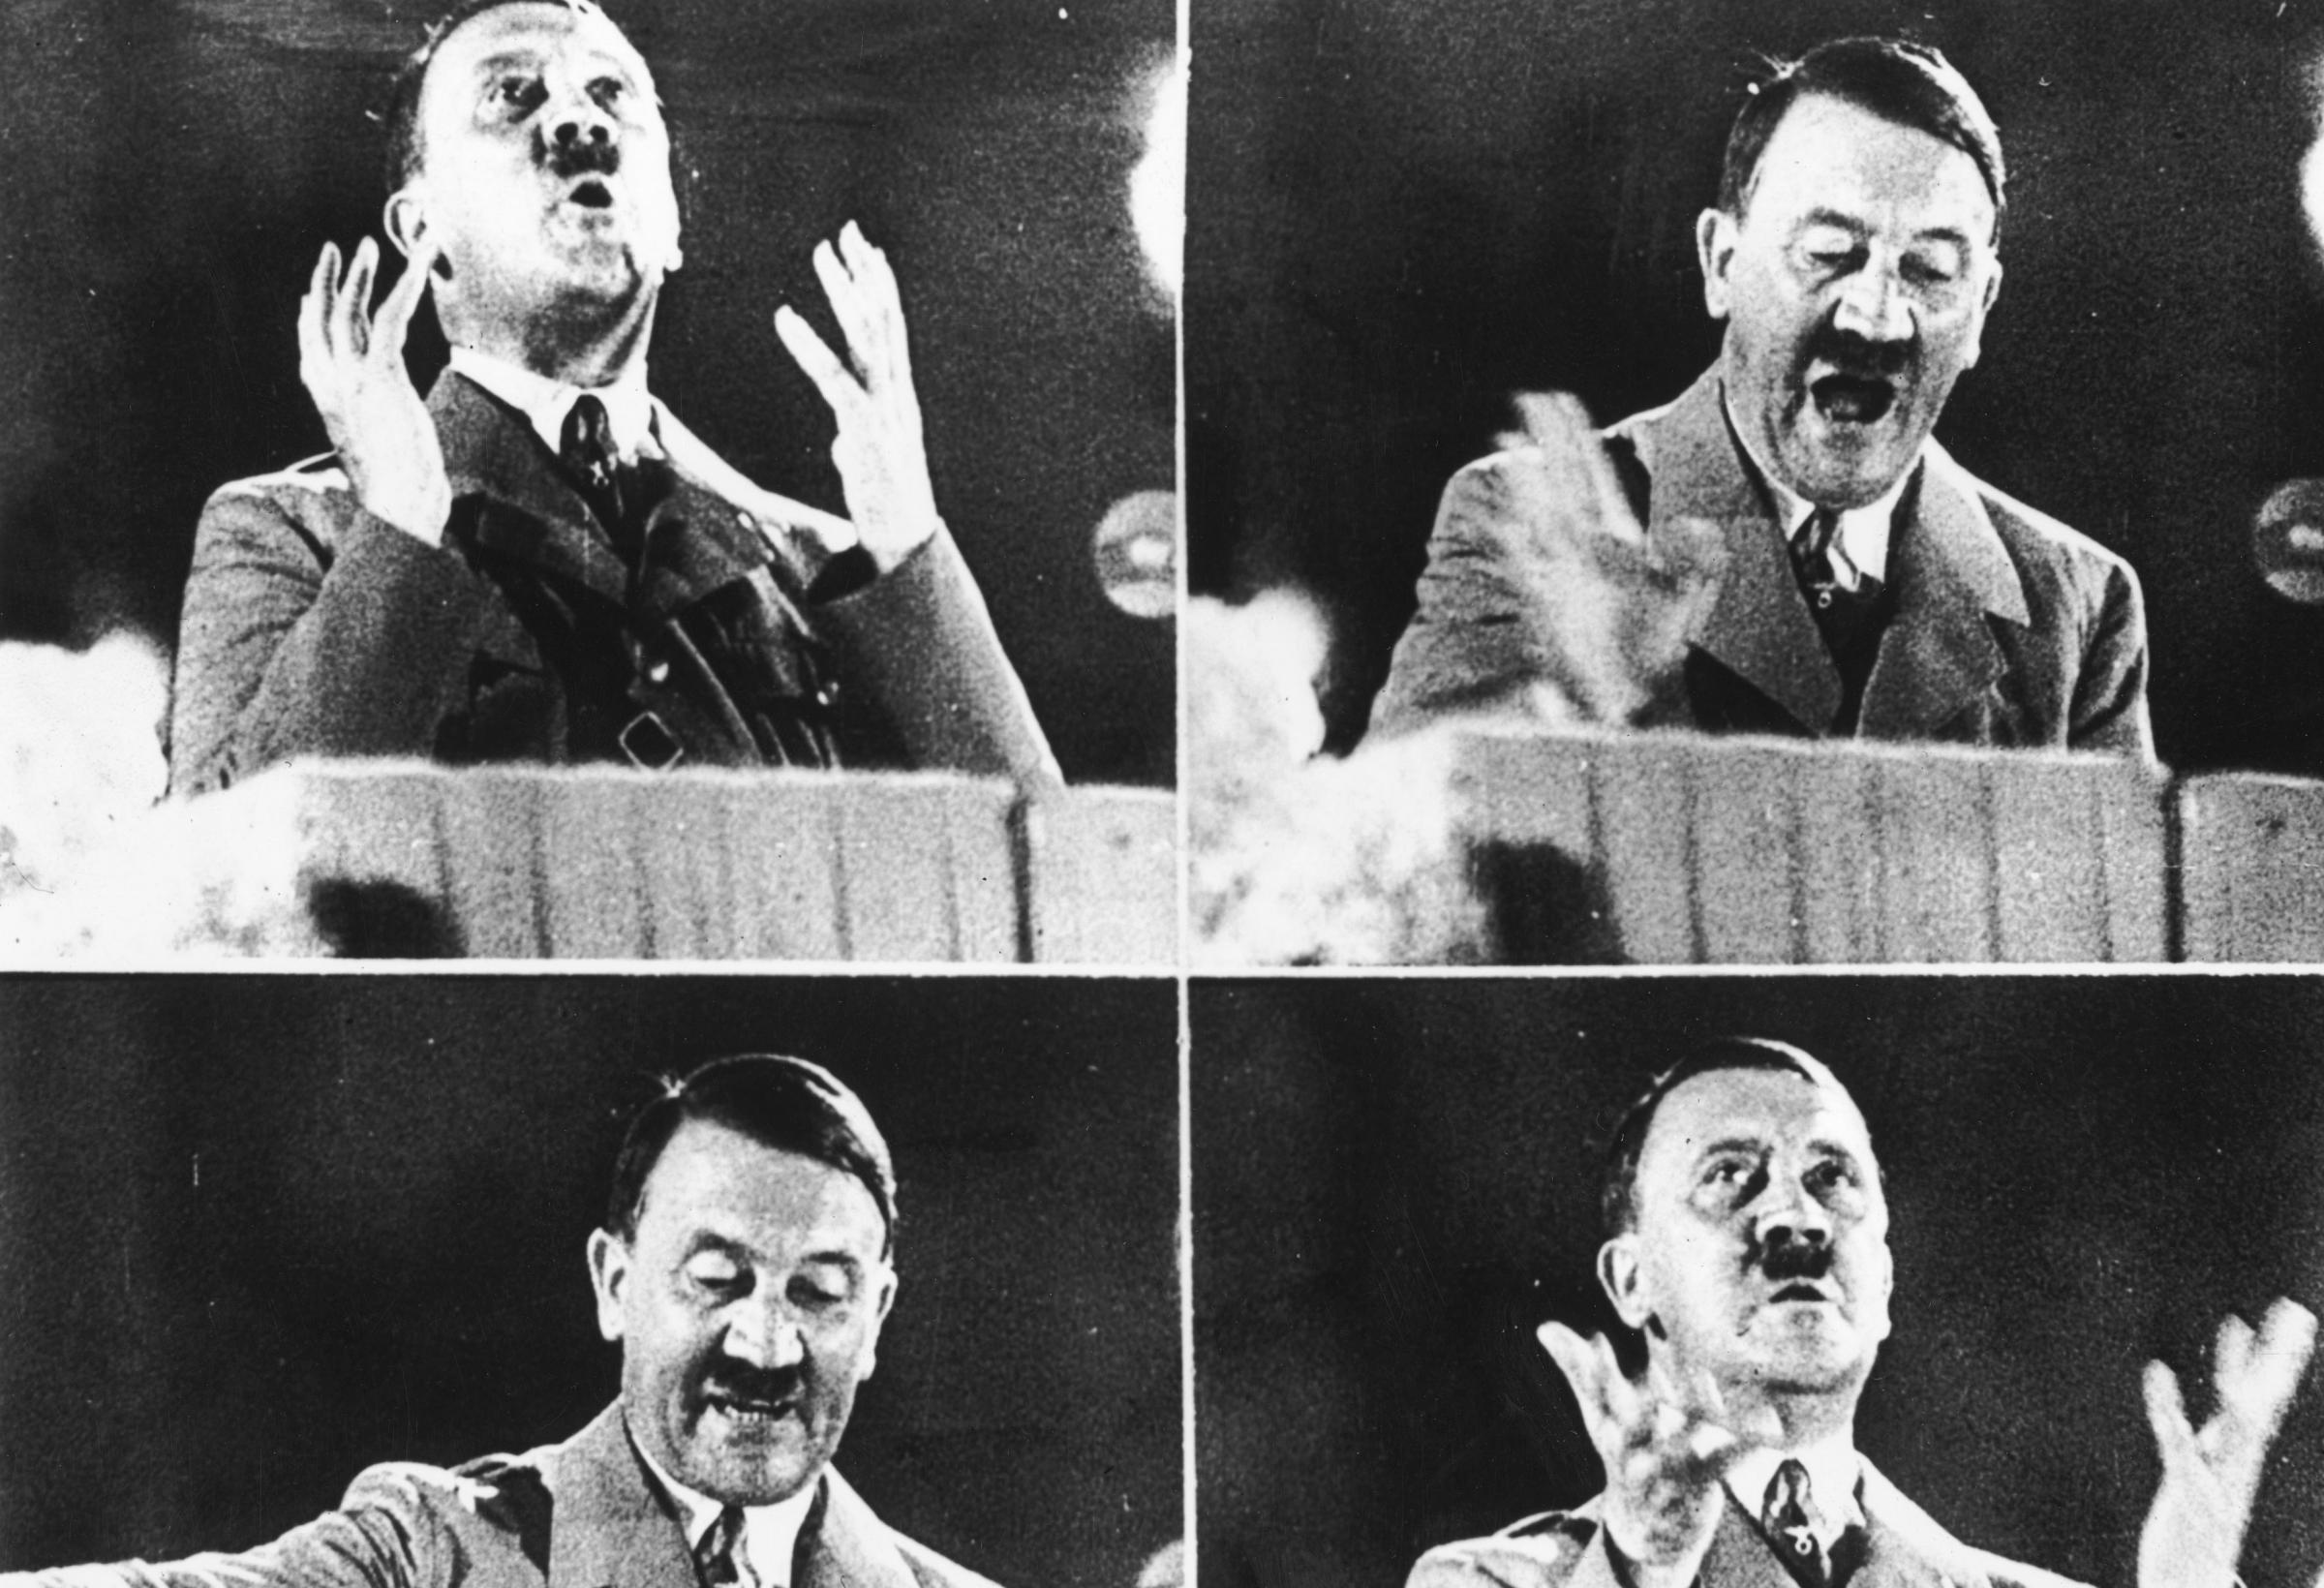 Author Says Hitler Was 'Blitzed' On Cocaine And Opiates